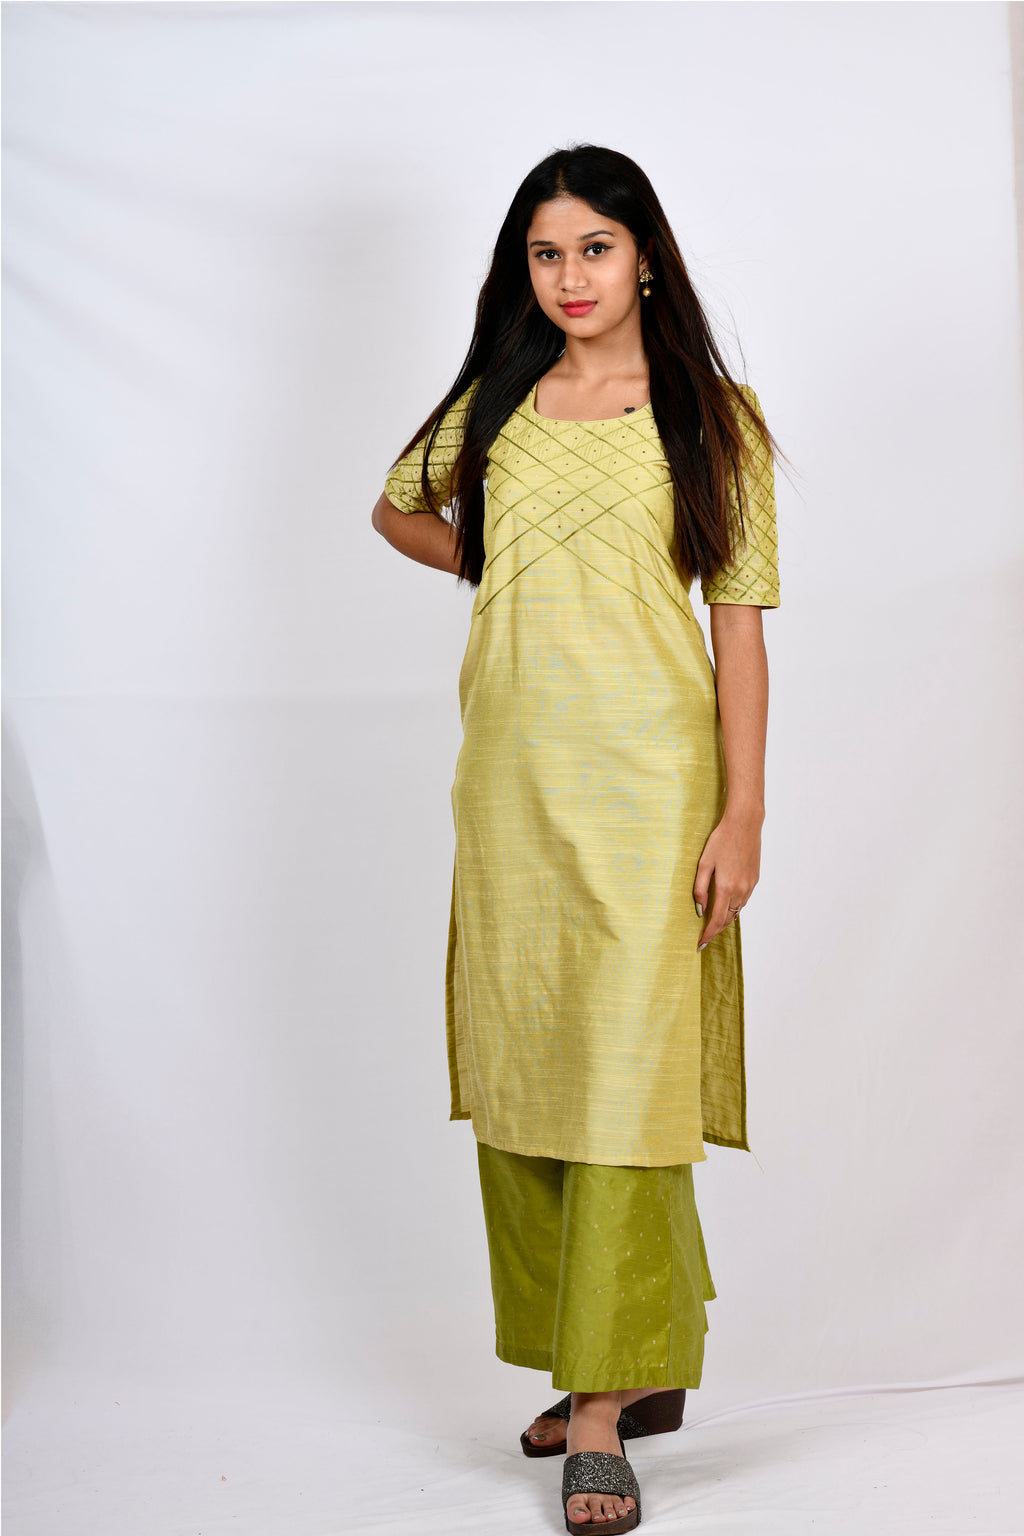 Byogi Soumya collection.This is the green Barfi embroidered kurtis latest design in the festive wear for women.